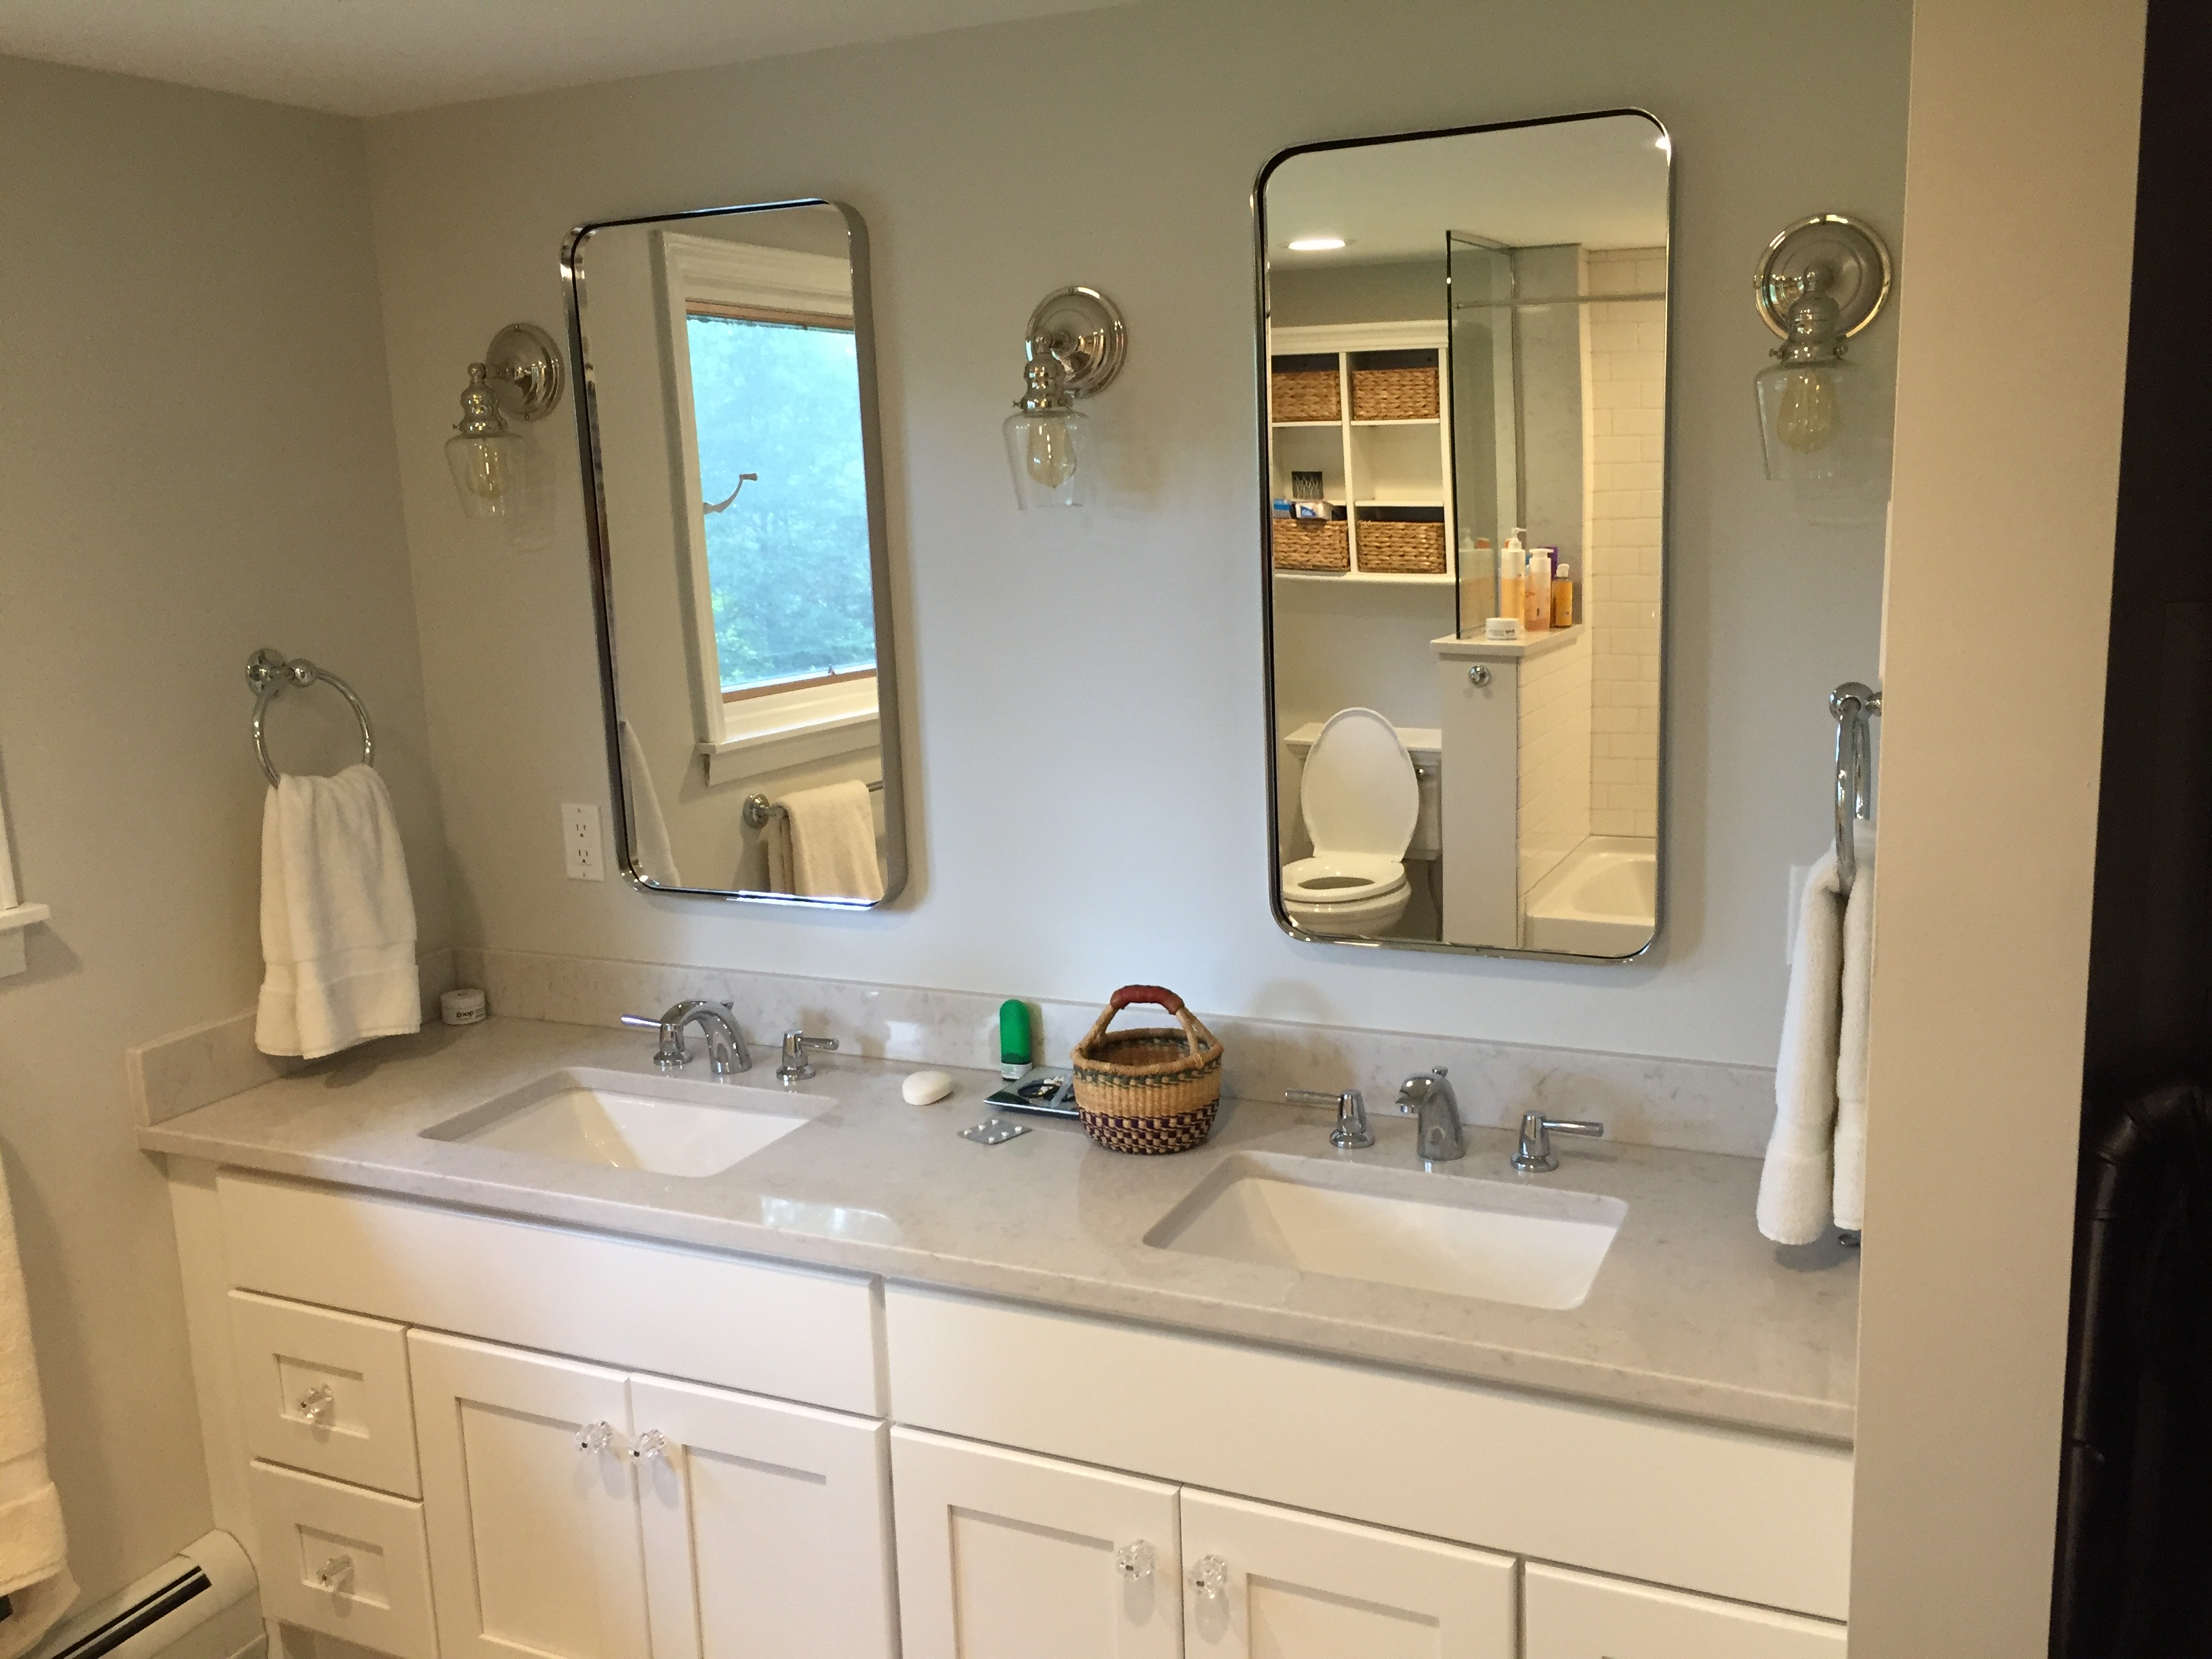 completed bathroom remodeling project in central vermont by allied contractors